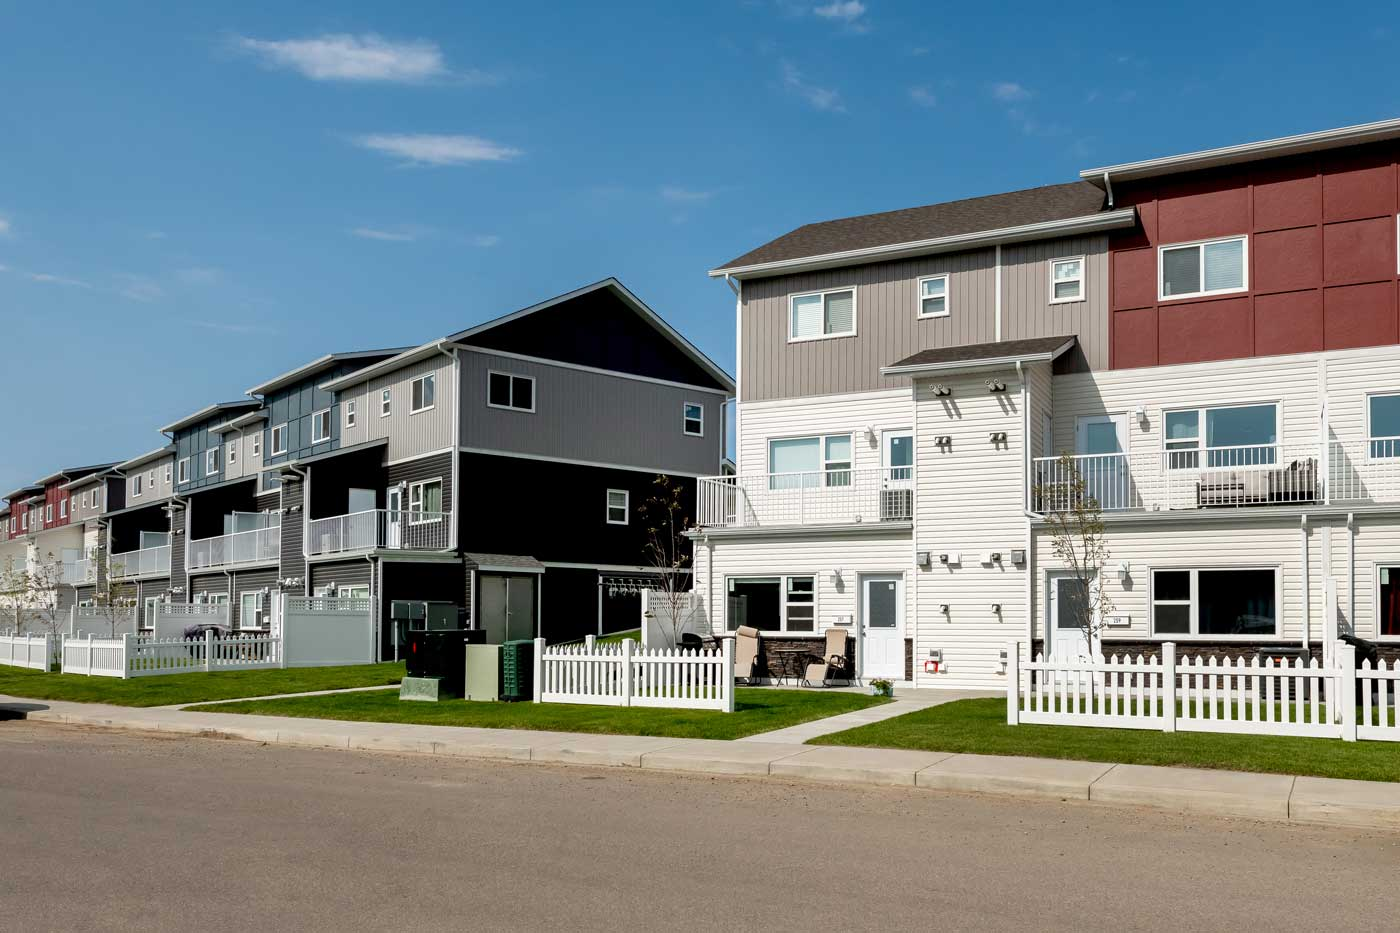 Cory Villas townhouses in Saskatoon, Sask. Some of the siding is red, white and grey while the building next to it is blue, grey, and black.